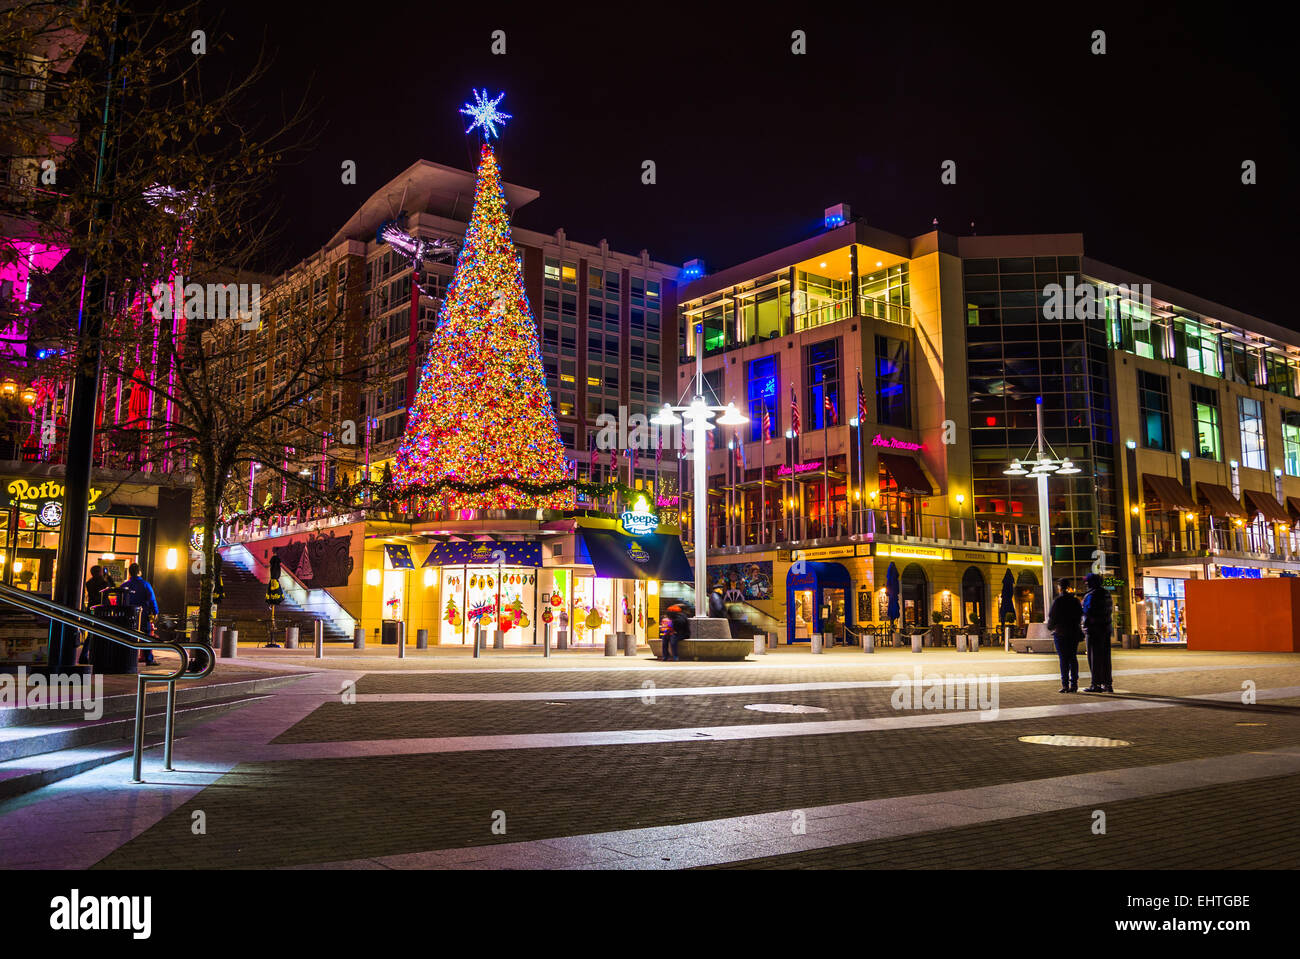 NATIONAL HARBOR, MARYLAND - DECEMBER 2: Christmas tree at ...